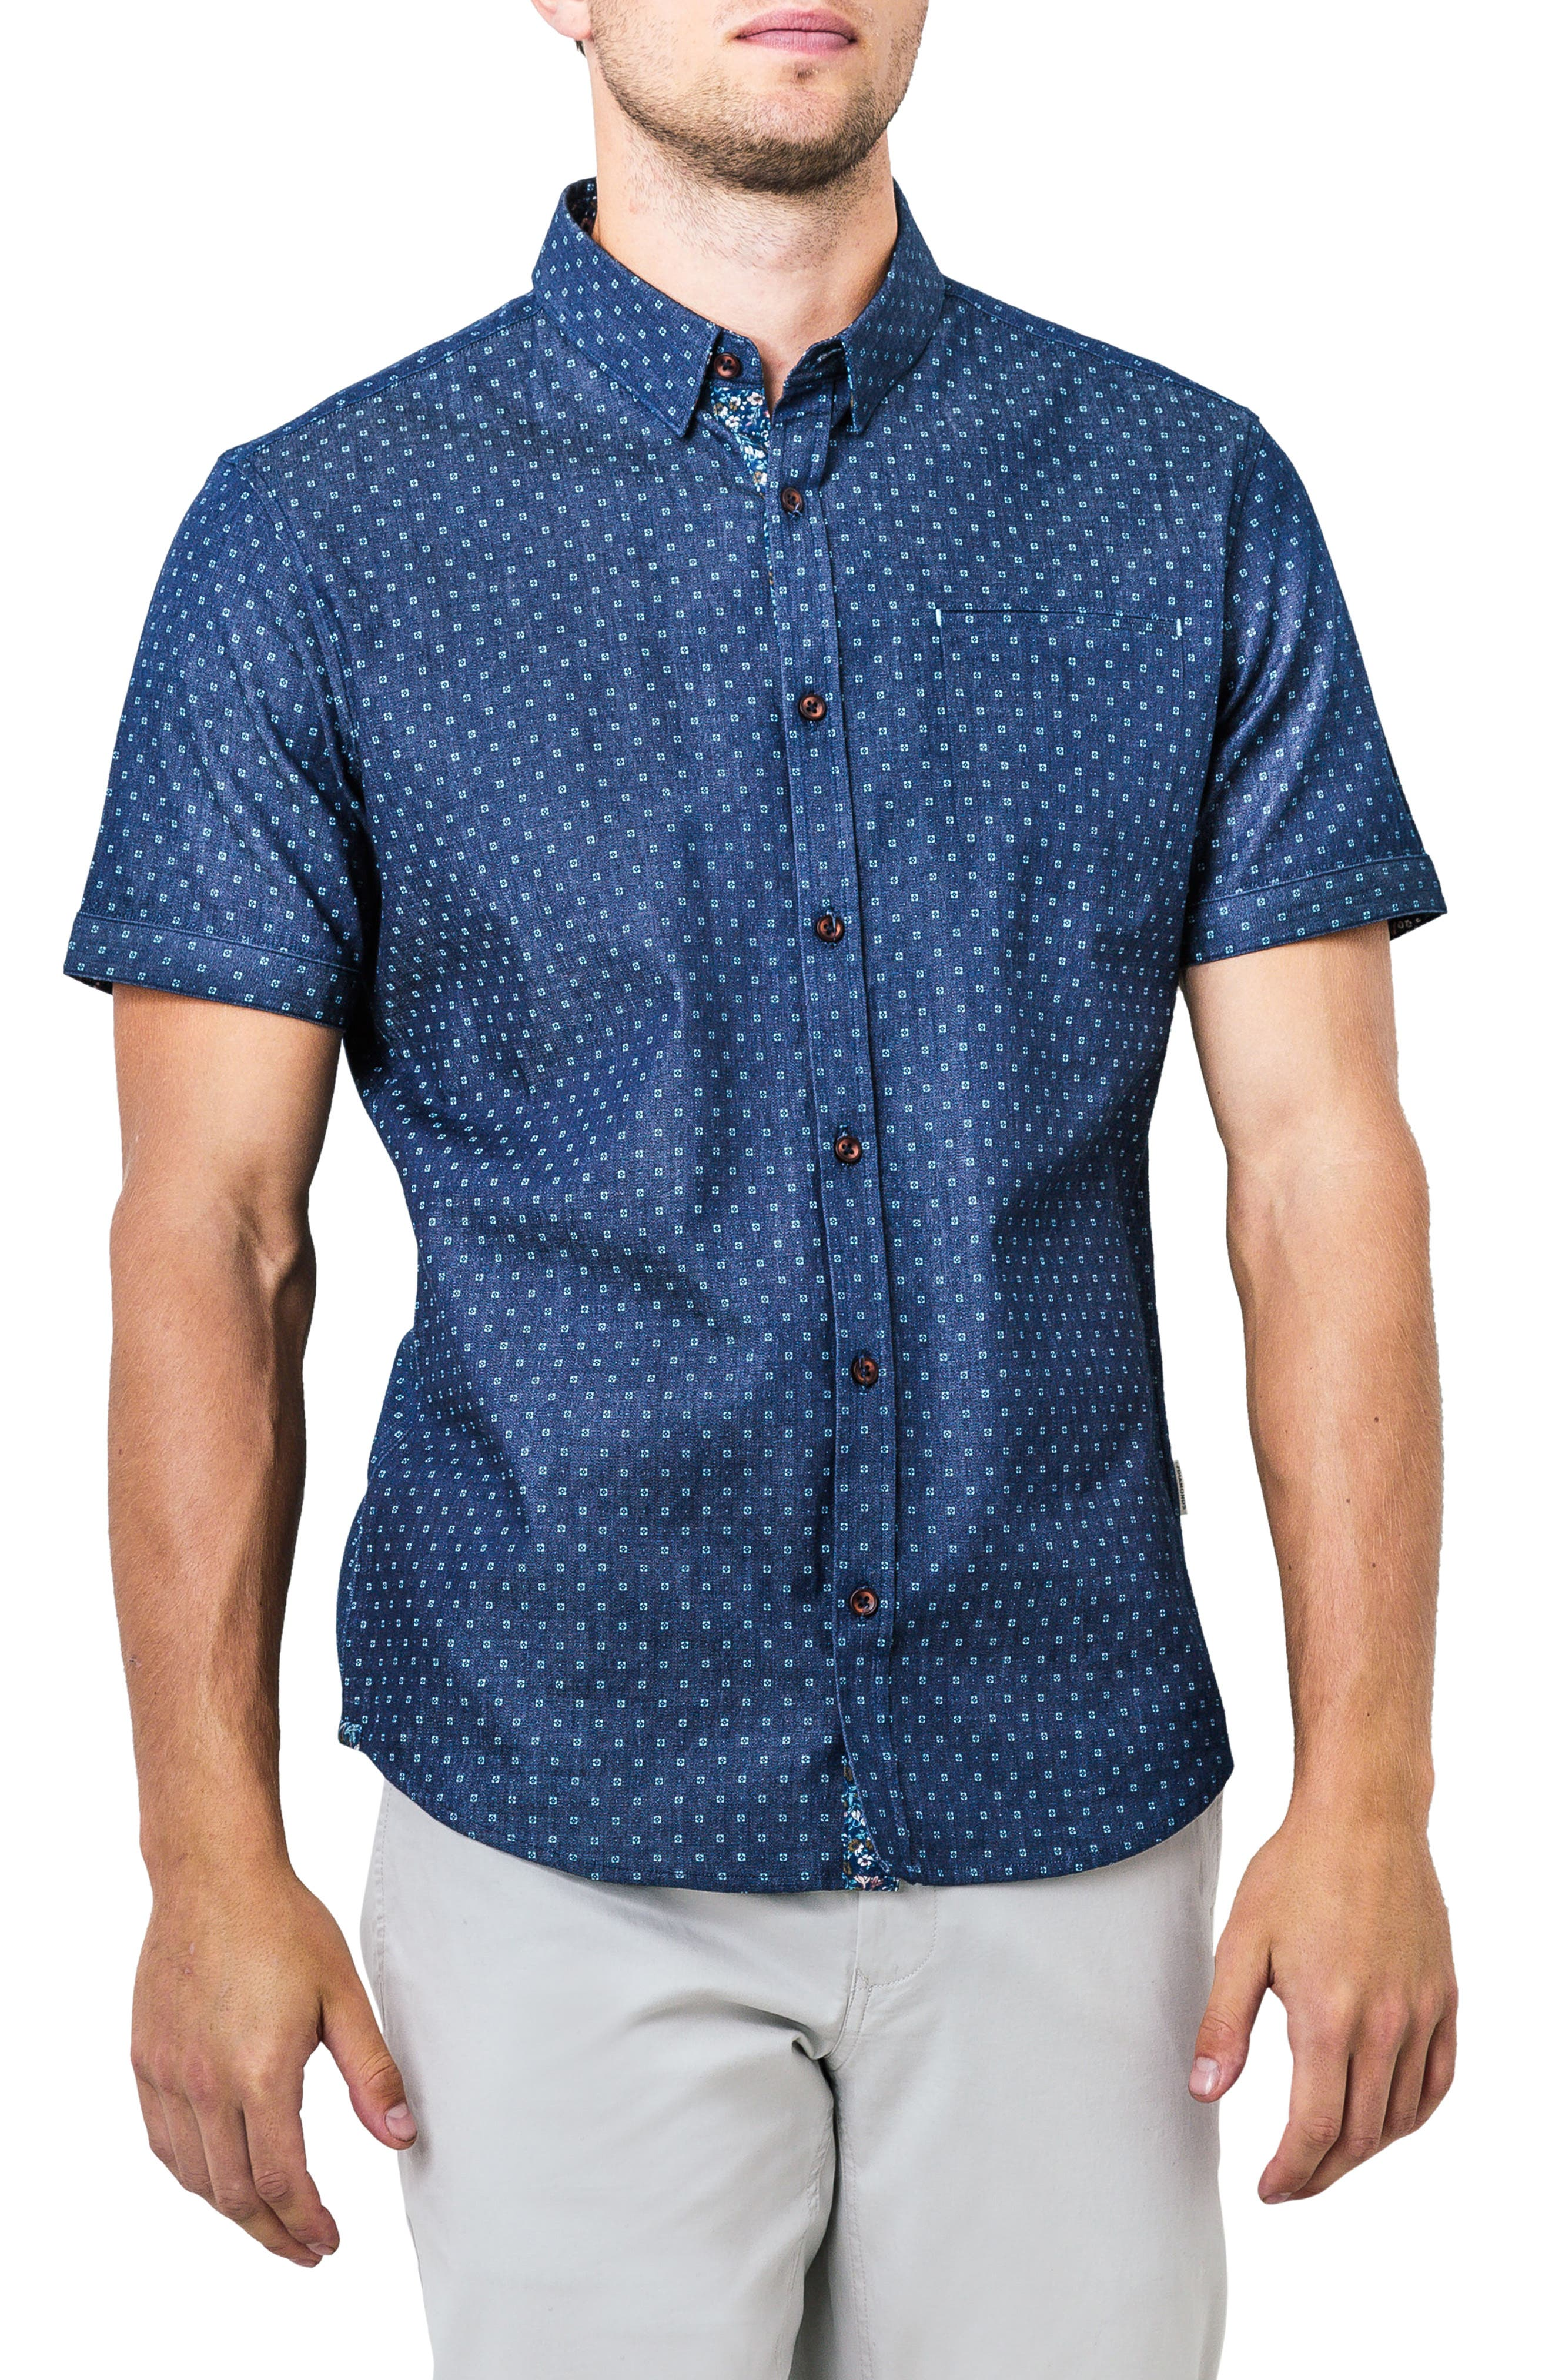 Innervision Woven Shirt,                         Main,                         color, 410